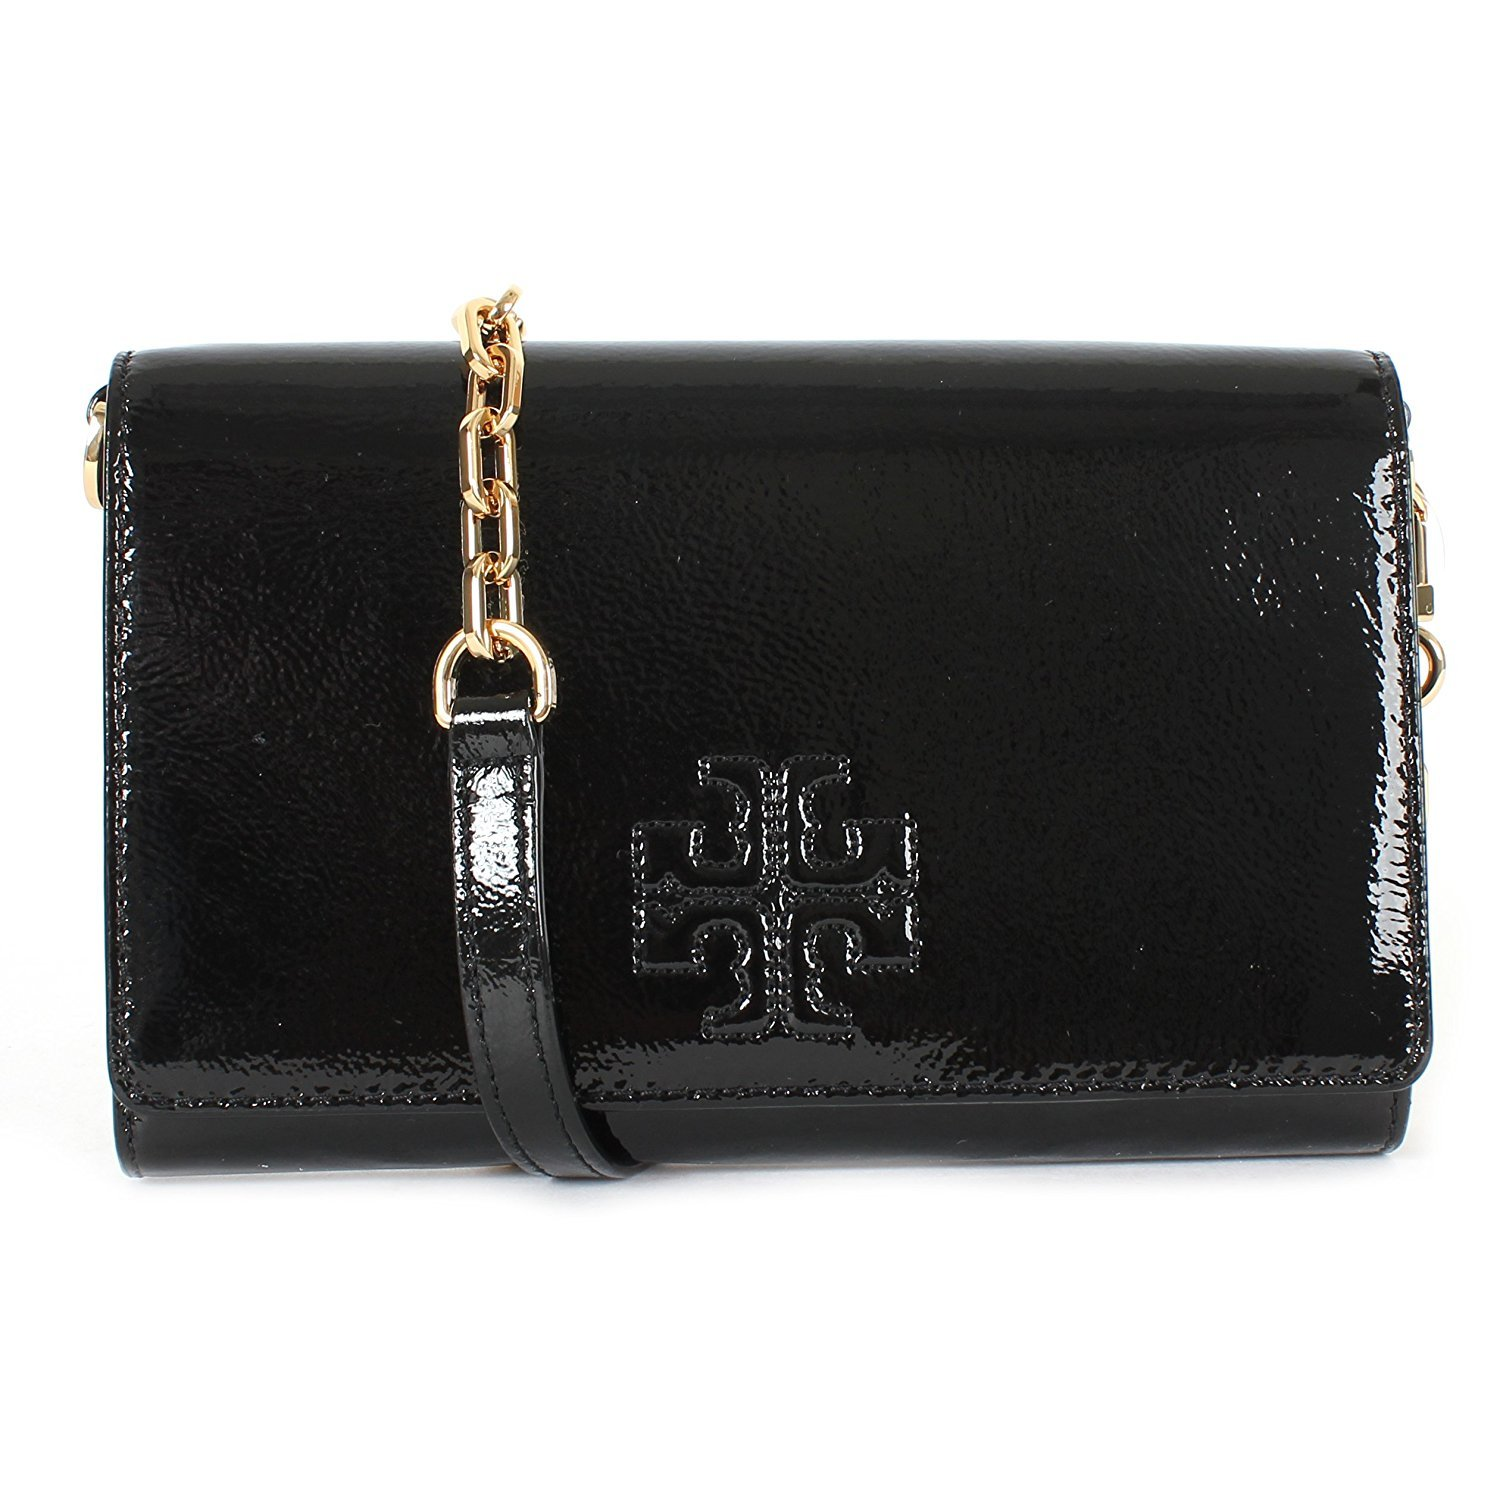 Tory Burch Charlie Patent Leather Flat Wallet Crossbody, Style No. 34050 (Black)